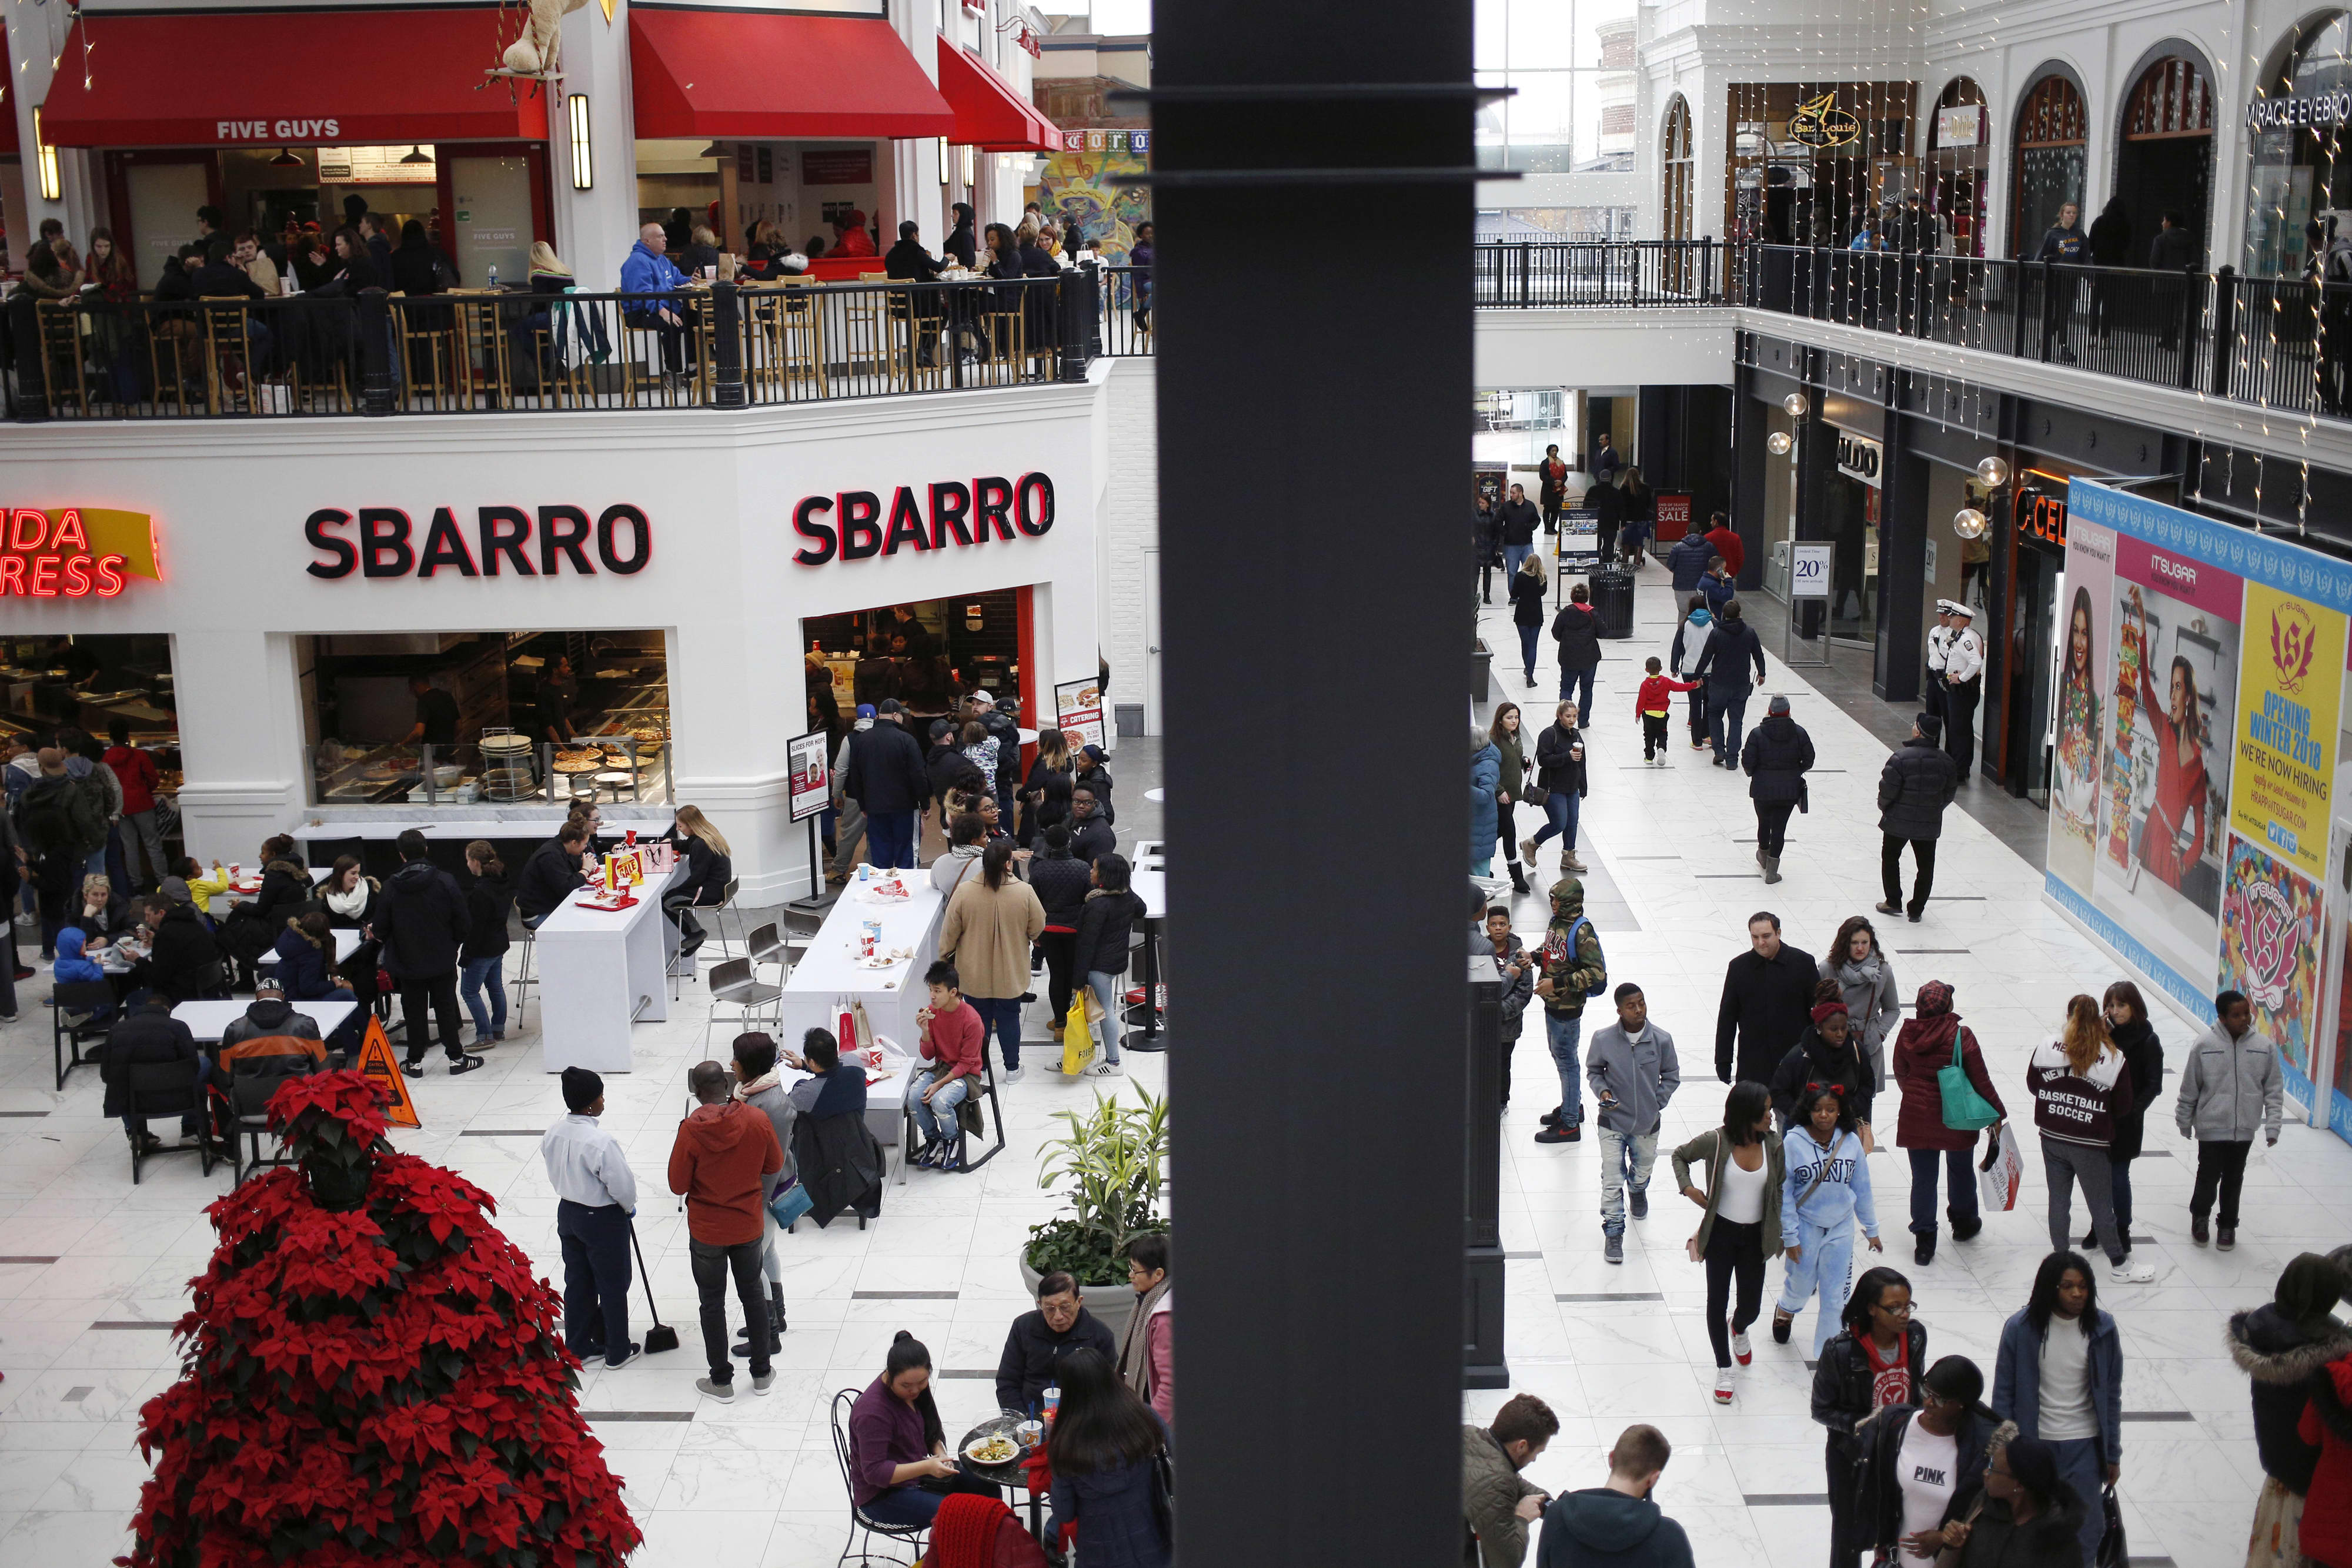 More people are going to the mall to eat at the food court, not shop, UBS says